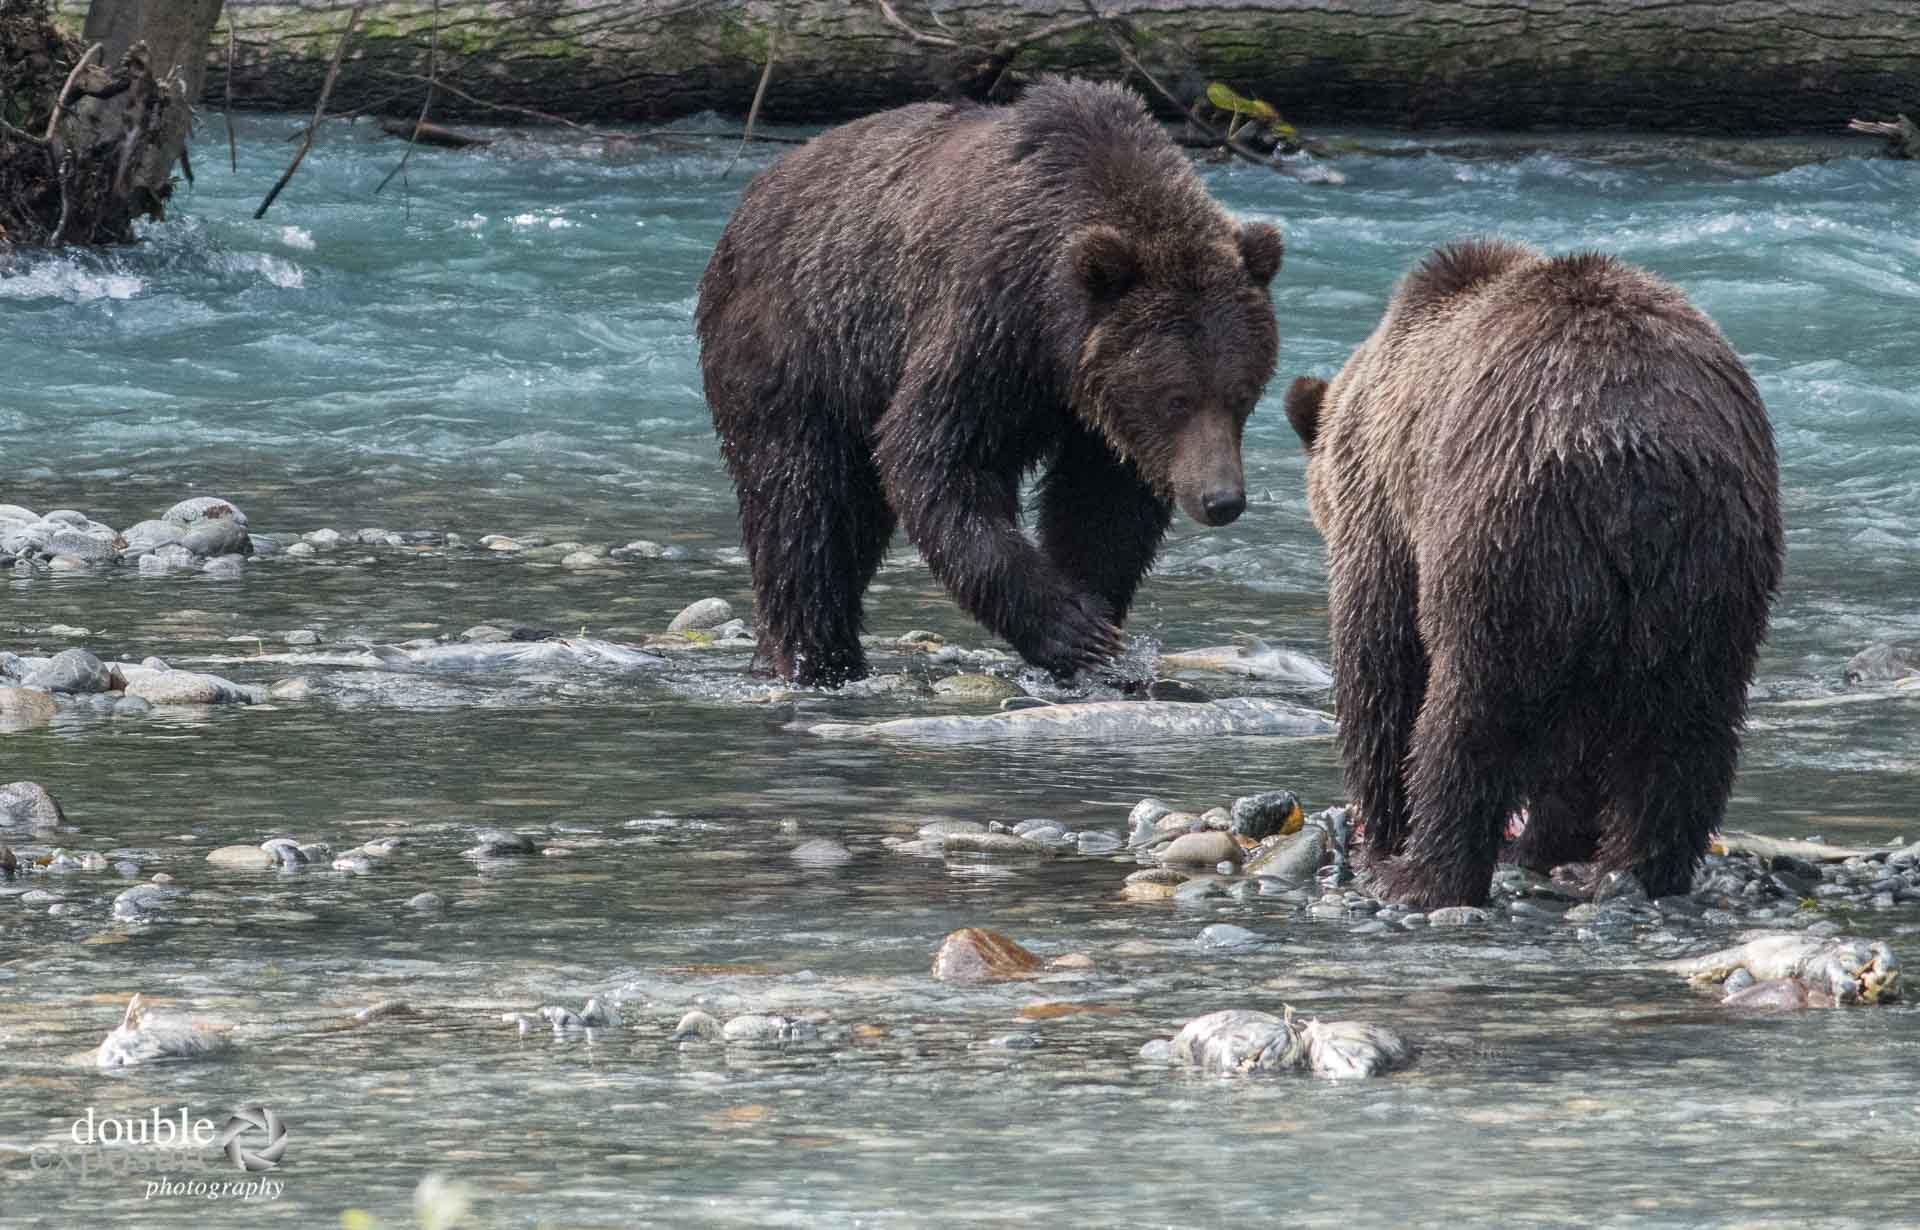 two bears confront each other